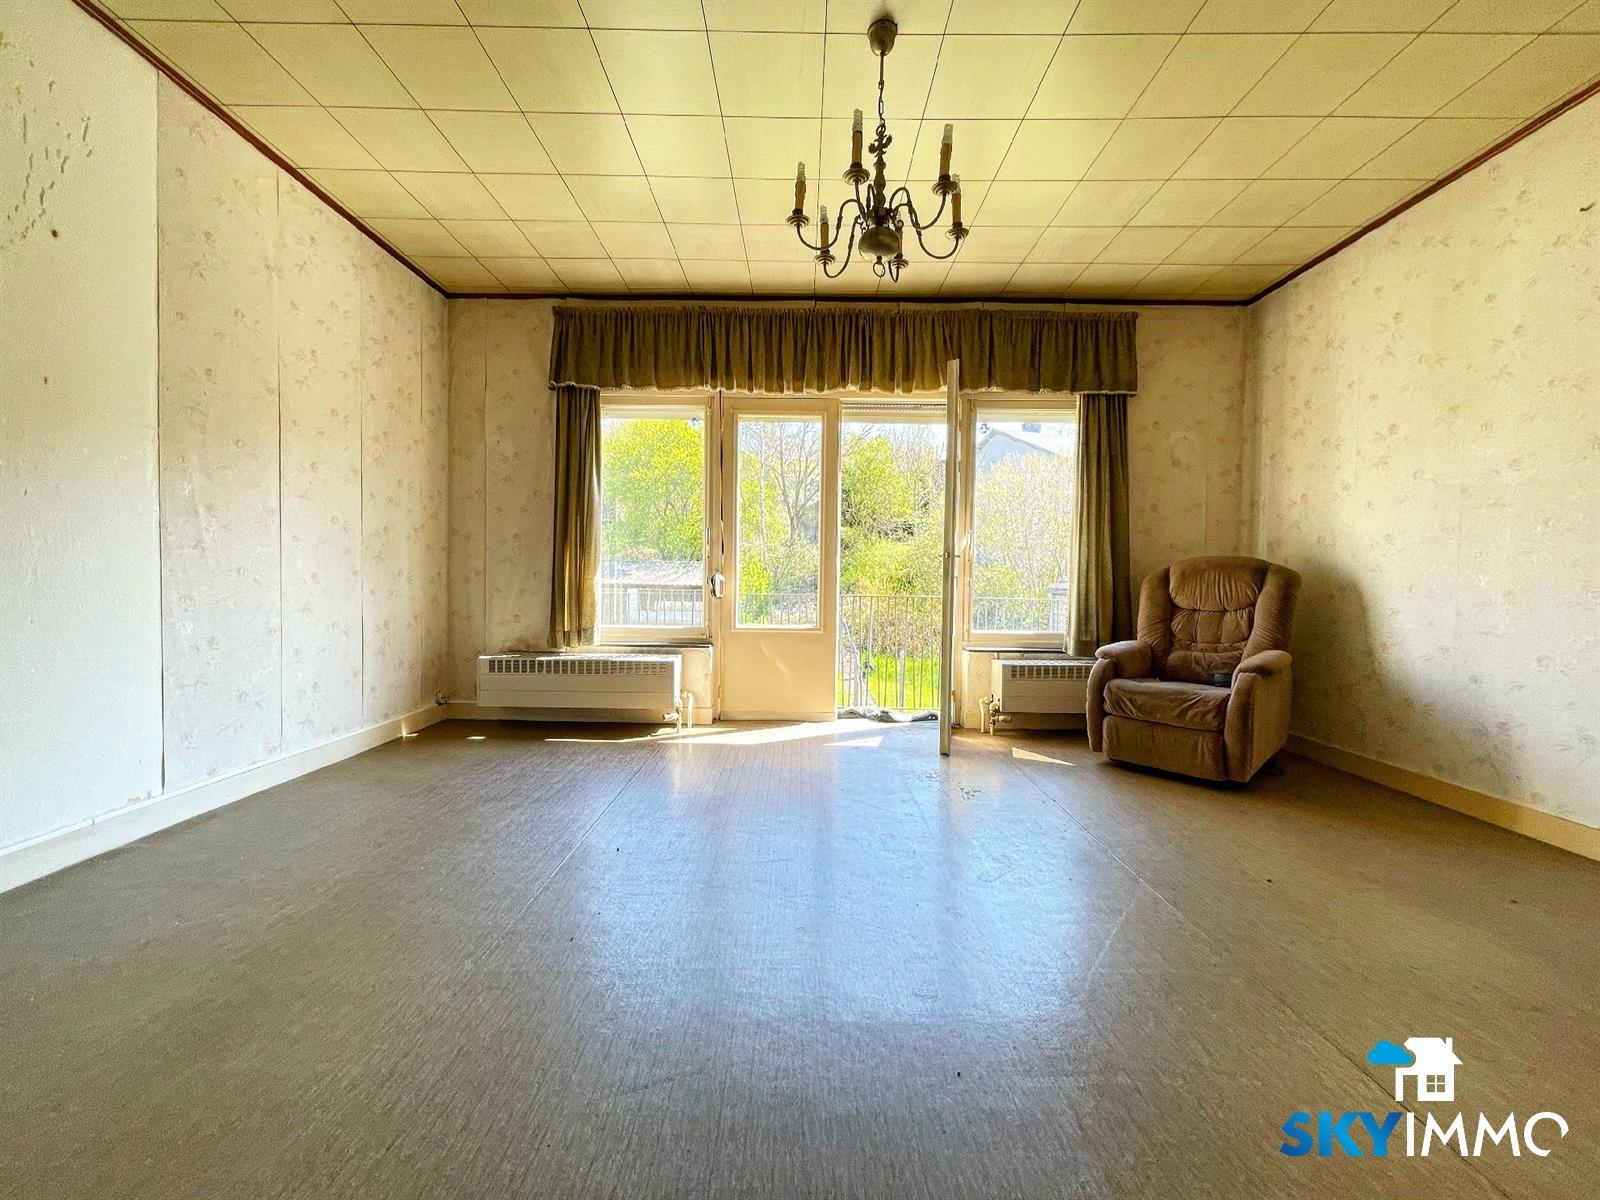 Huis - Flemalle - #4346611-17